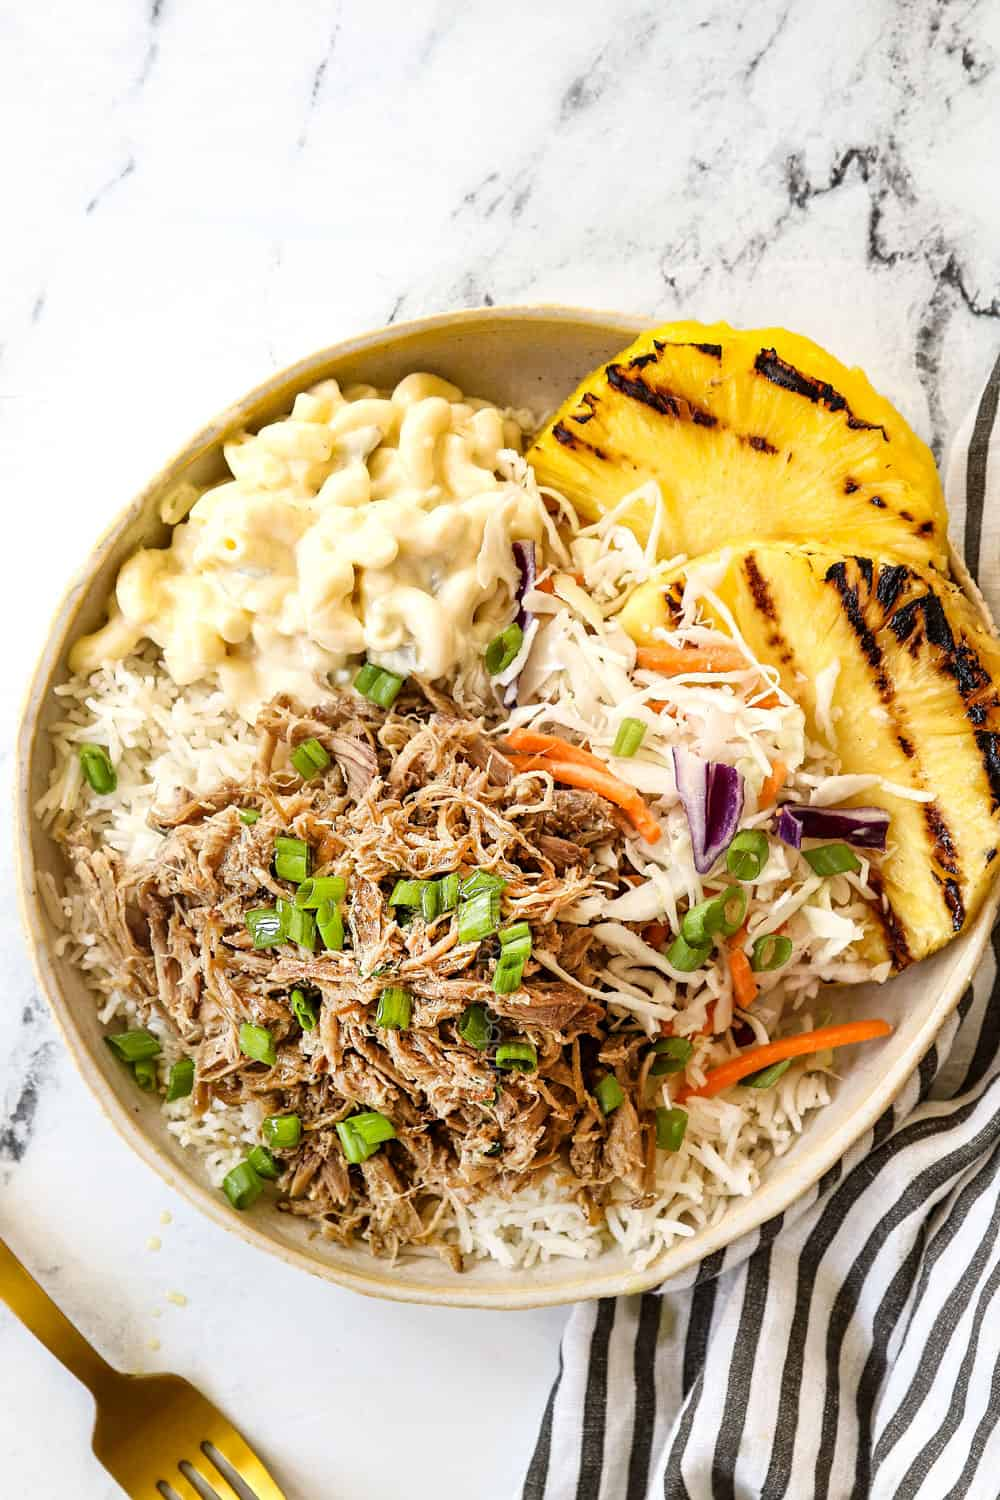 top view of a plate of Kalua Pork recipe with rice, pineapple and macaroni salad